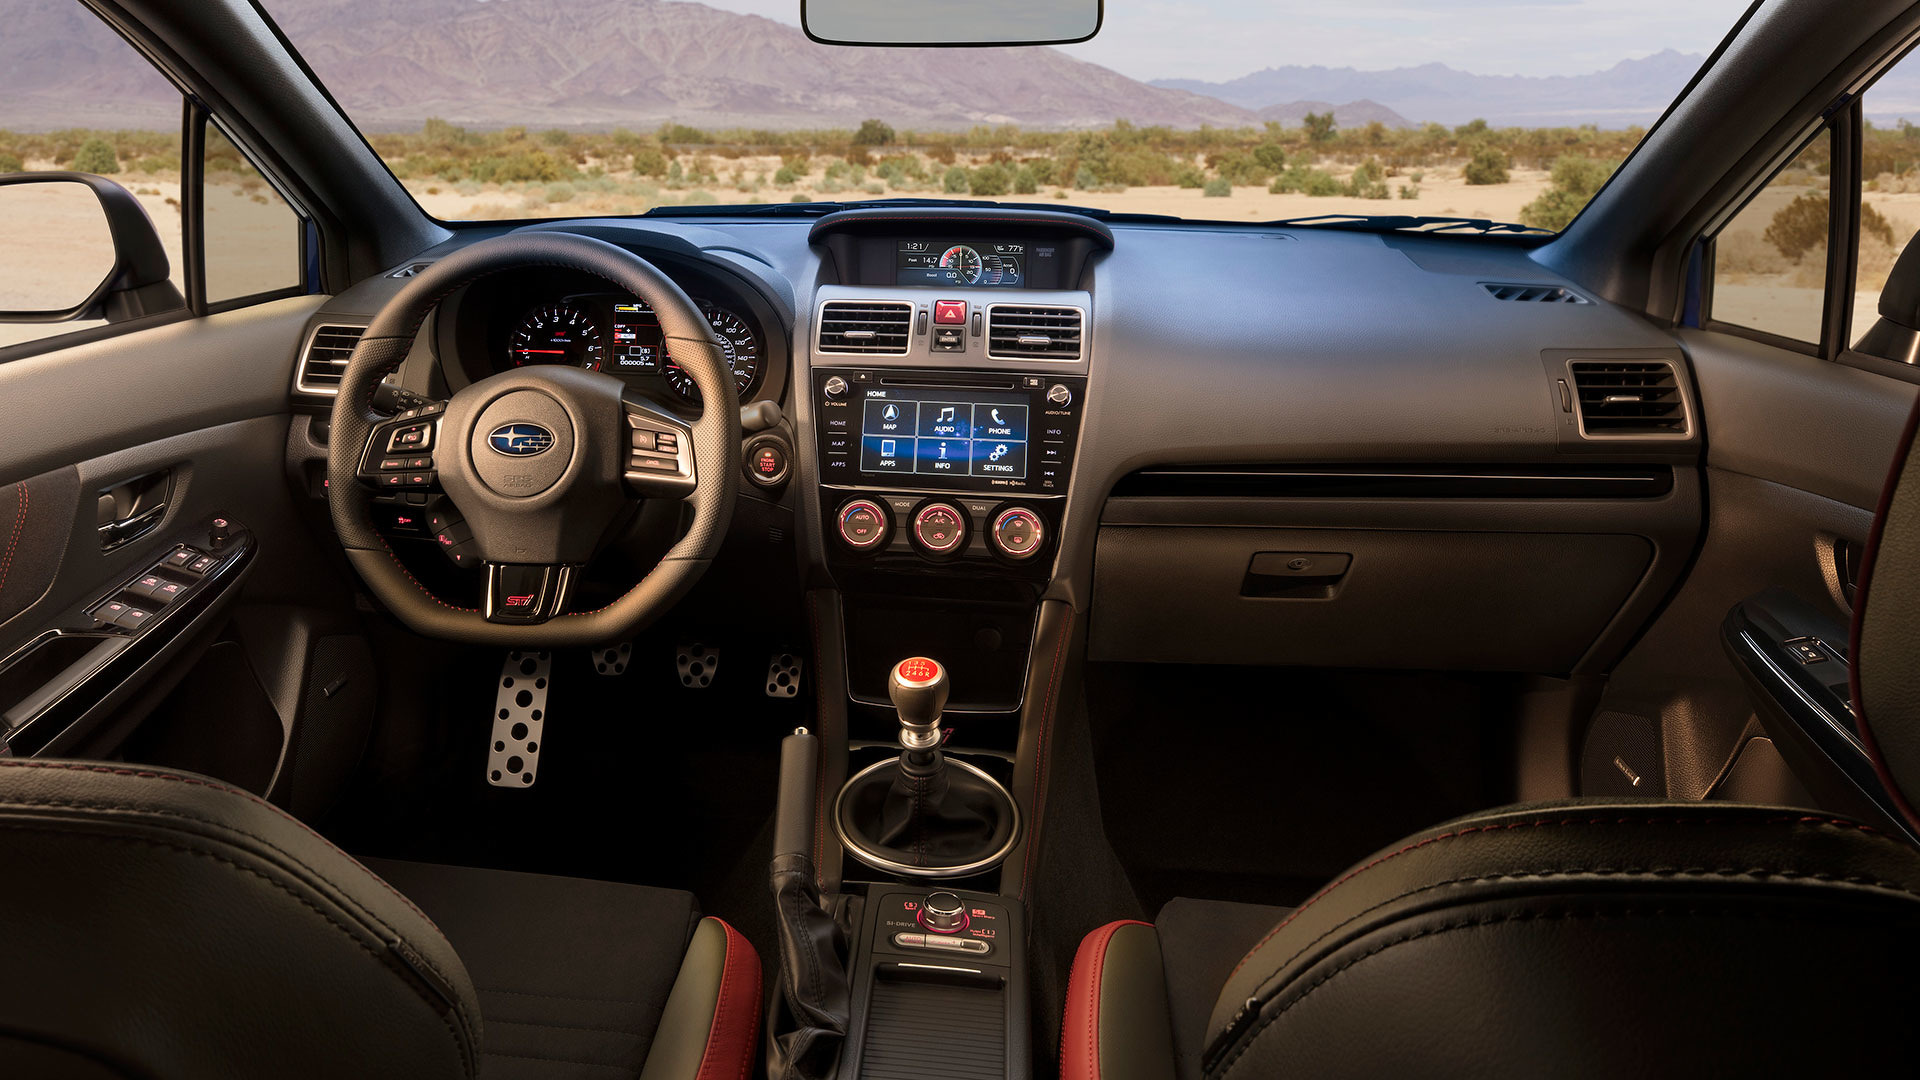 2018 subaru wrx sti type ra.  wrx each of the 500 wrx sti type ra produced for retail sale has been  individually numbered with a plaque mounted on center console inside 2018 subaru wrx sti type ra